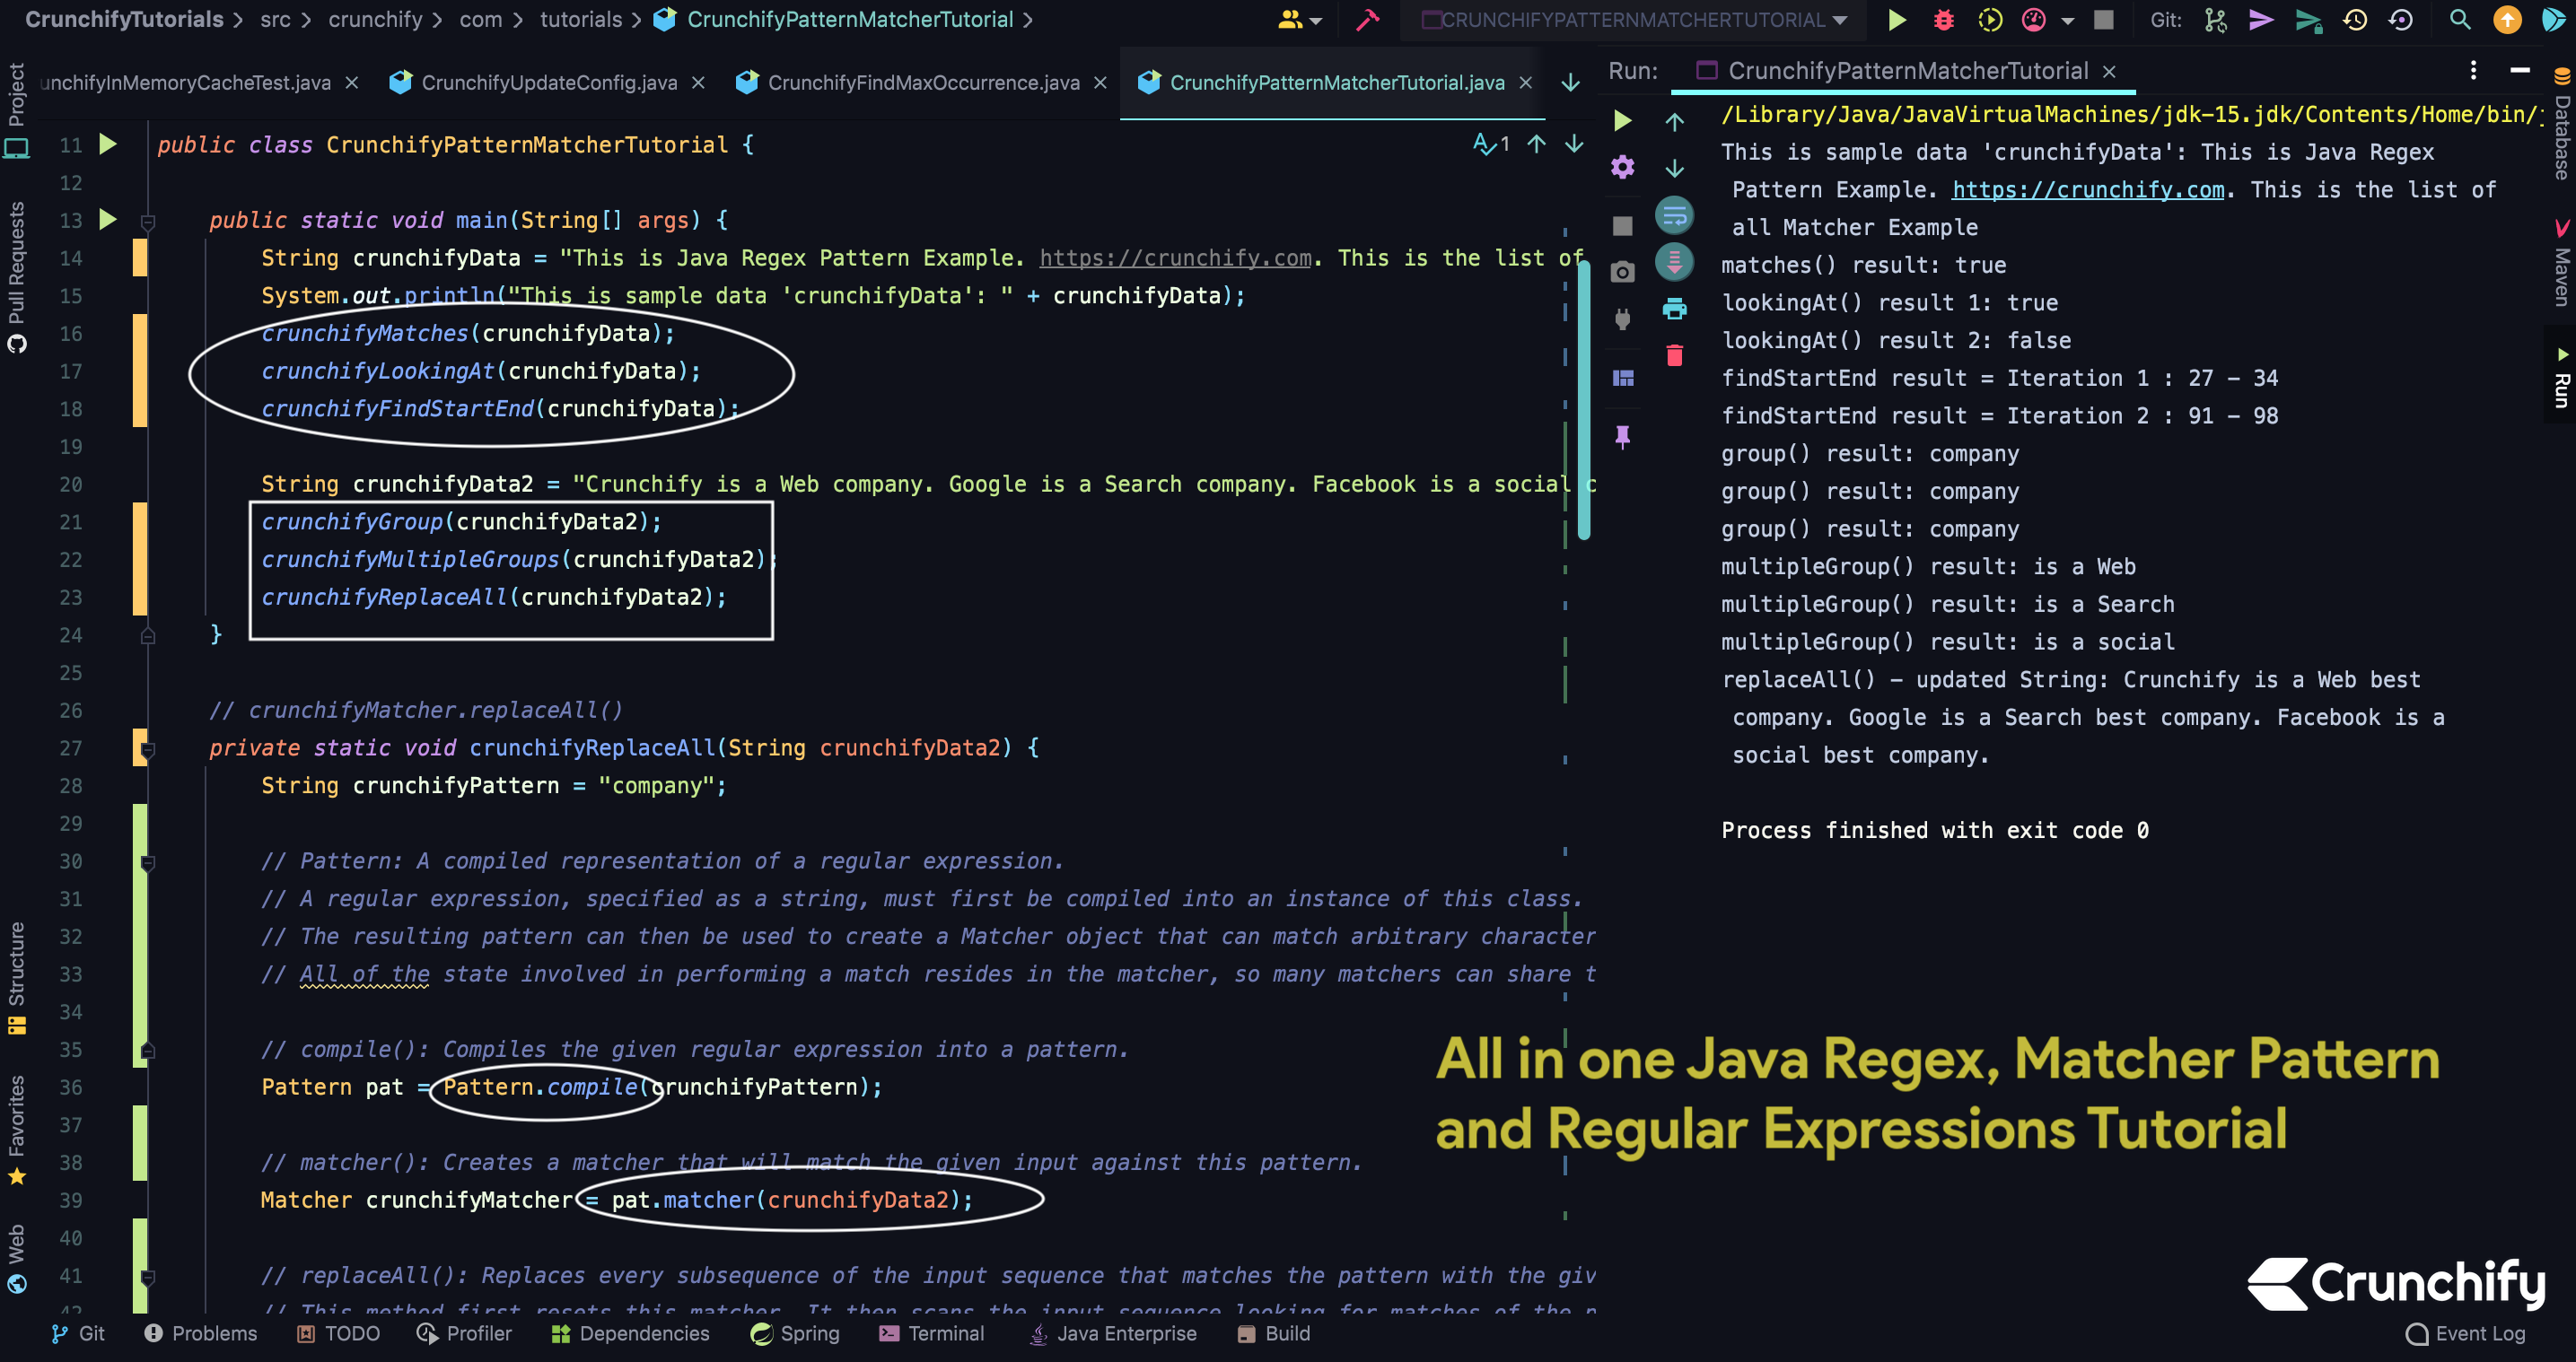 All in one Java Regex, Matcher Pattern and Regular Expressions Tutorial